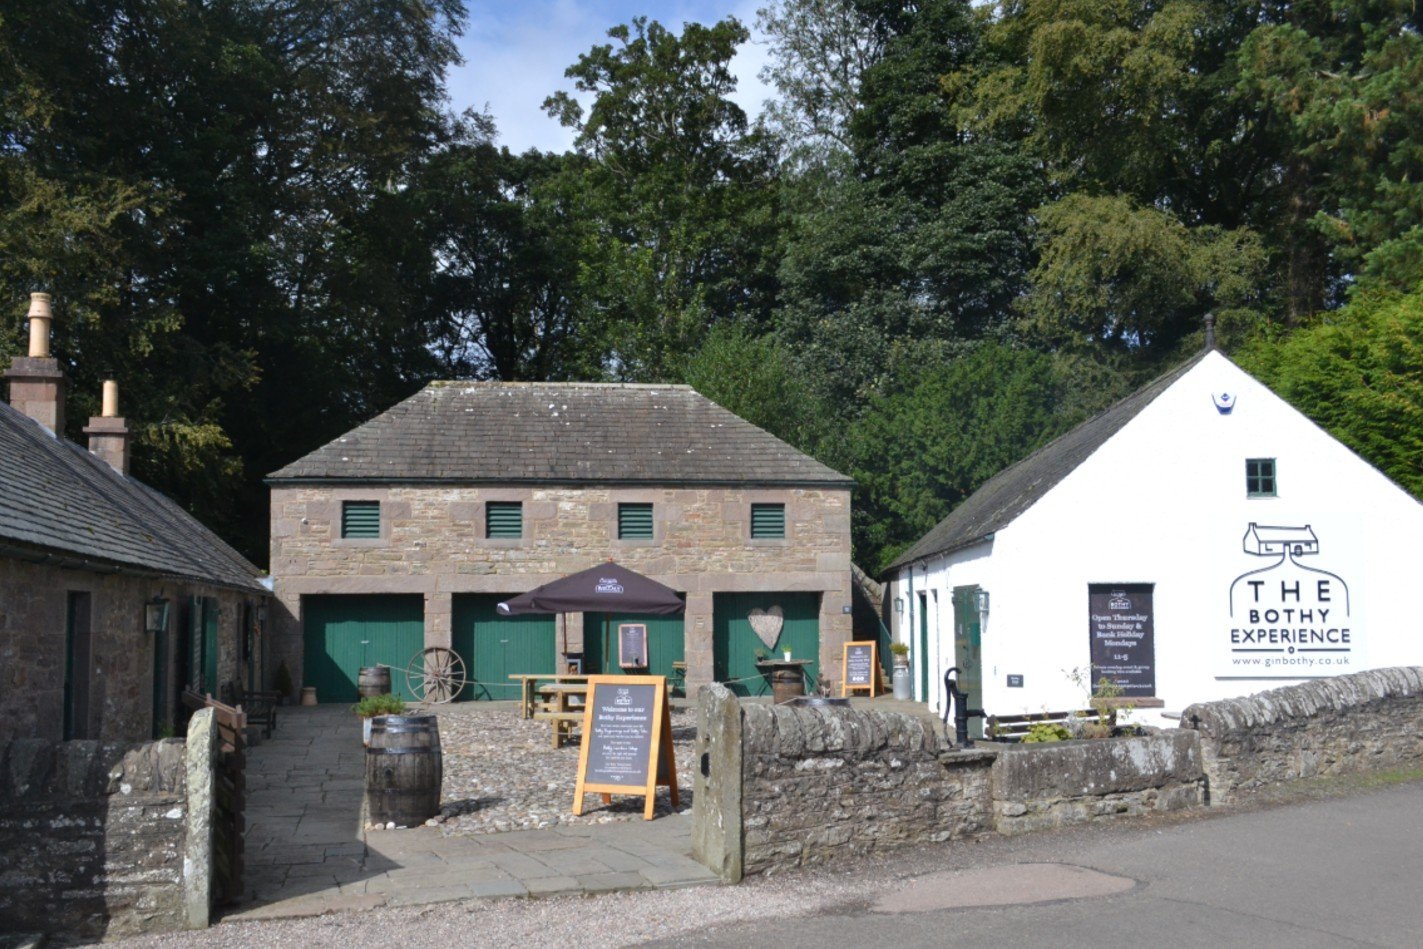 gin bothy building from outside